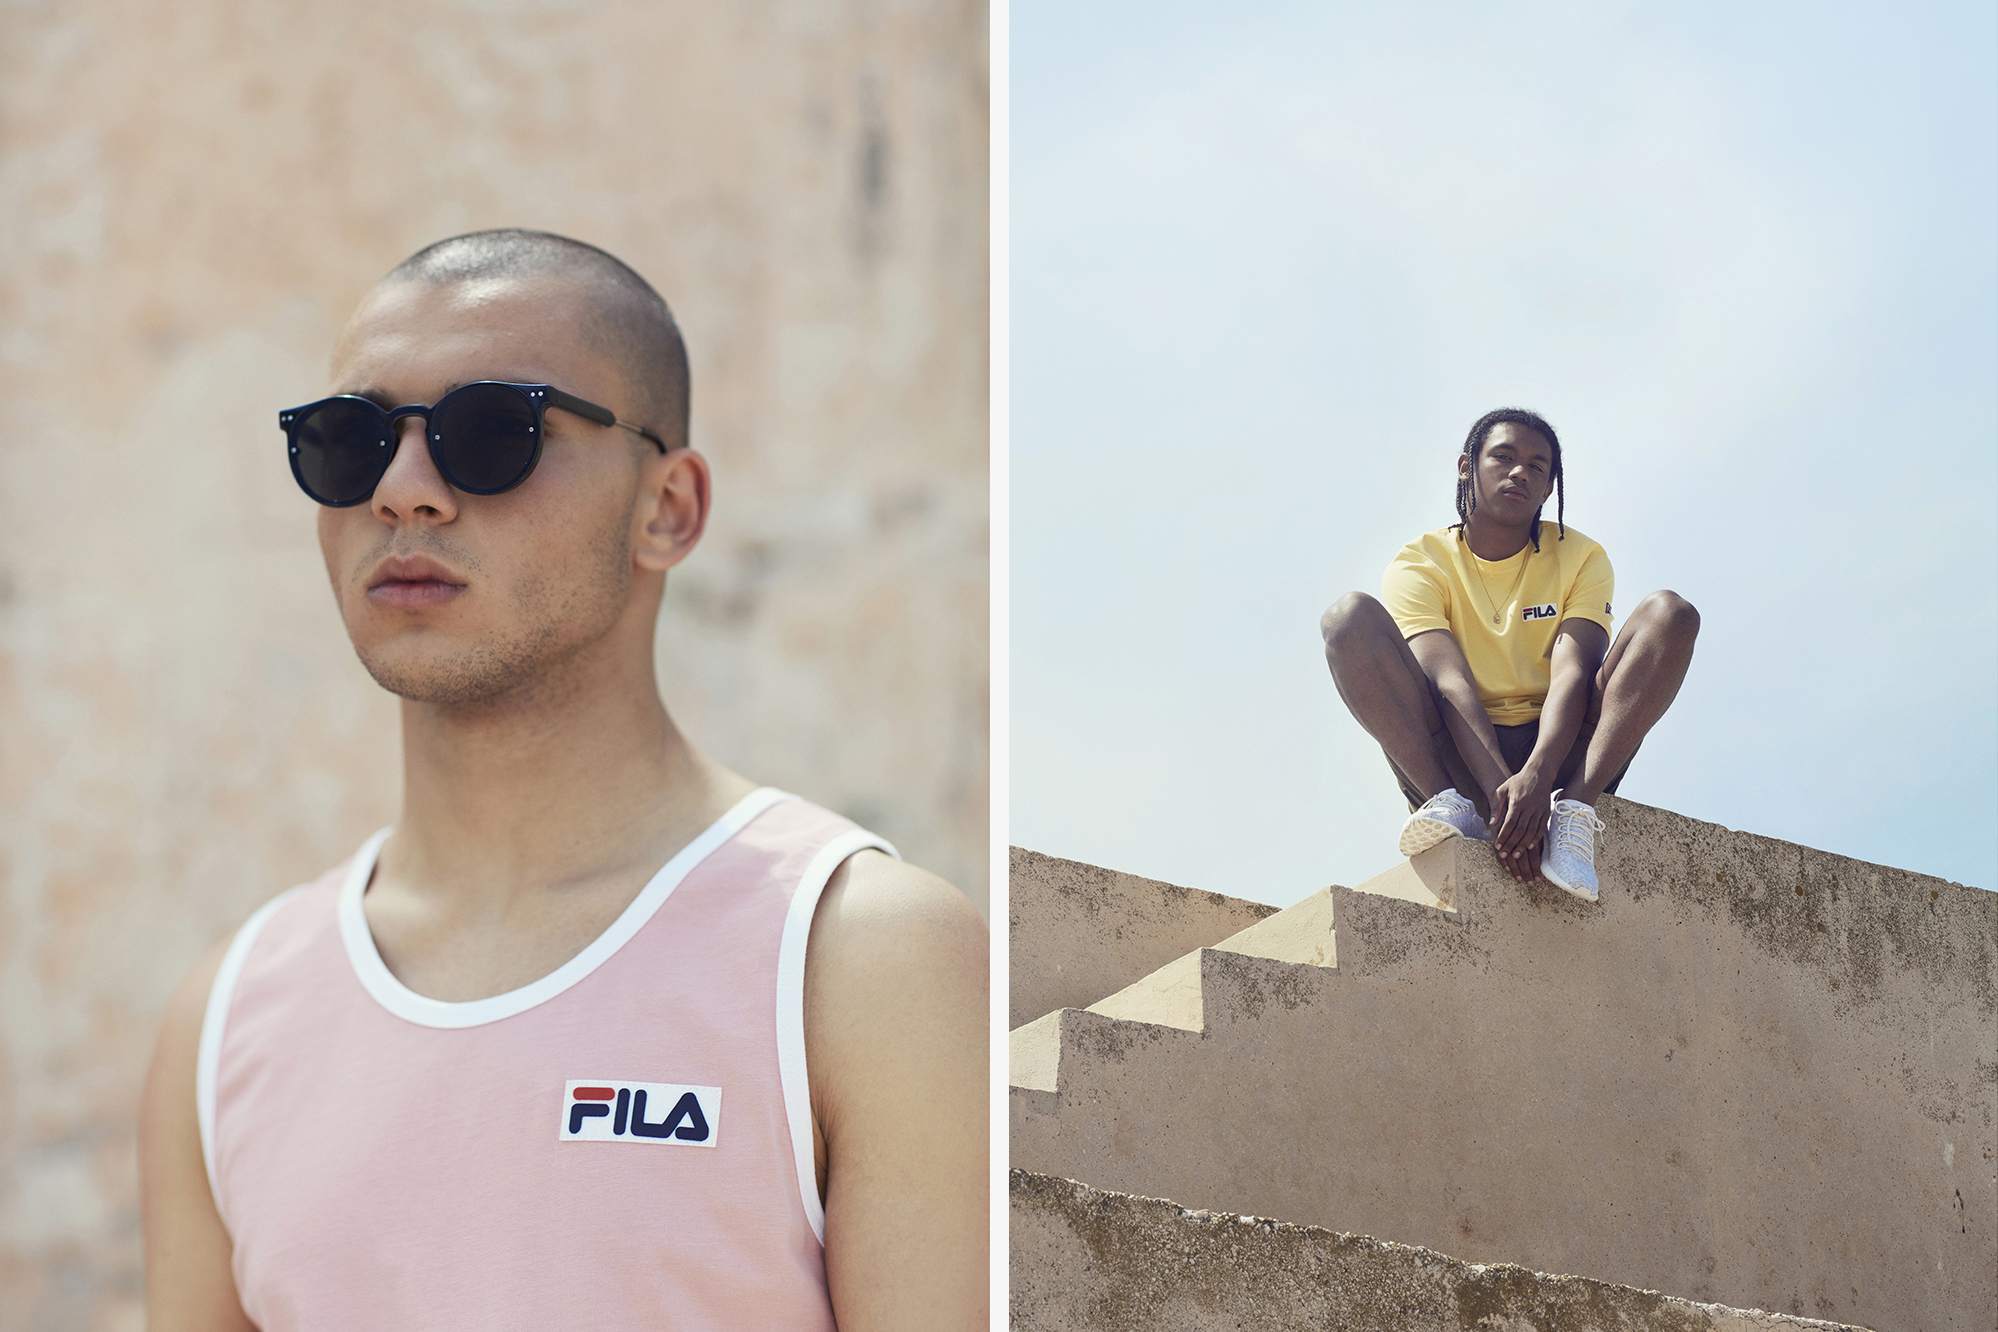 Fila Spring/Summer '17 Collection – size? Exclusive